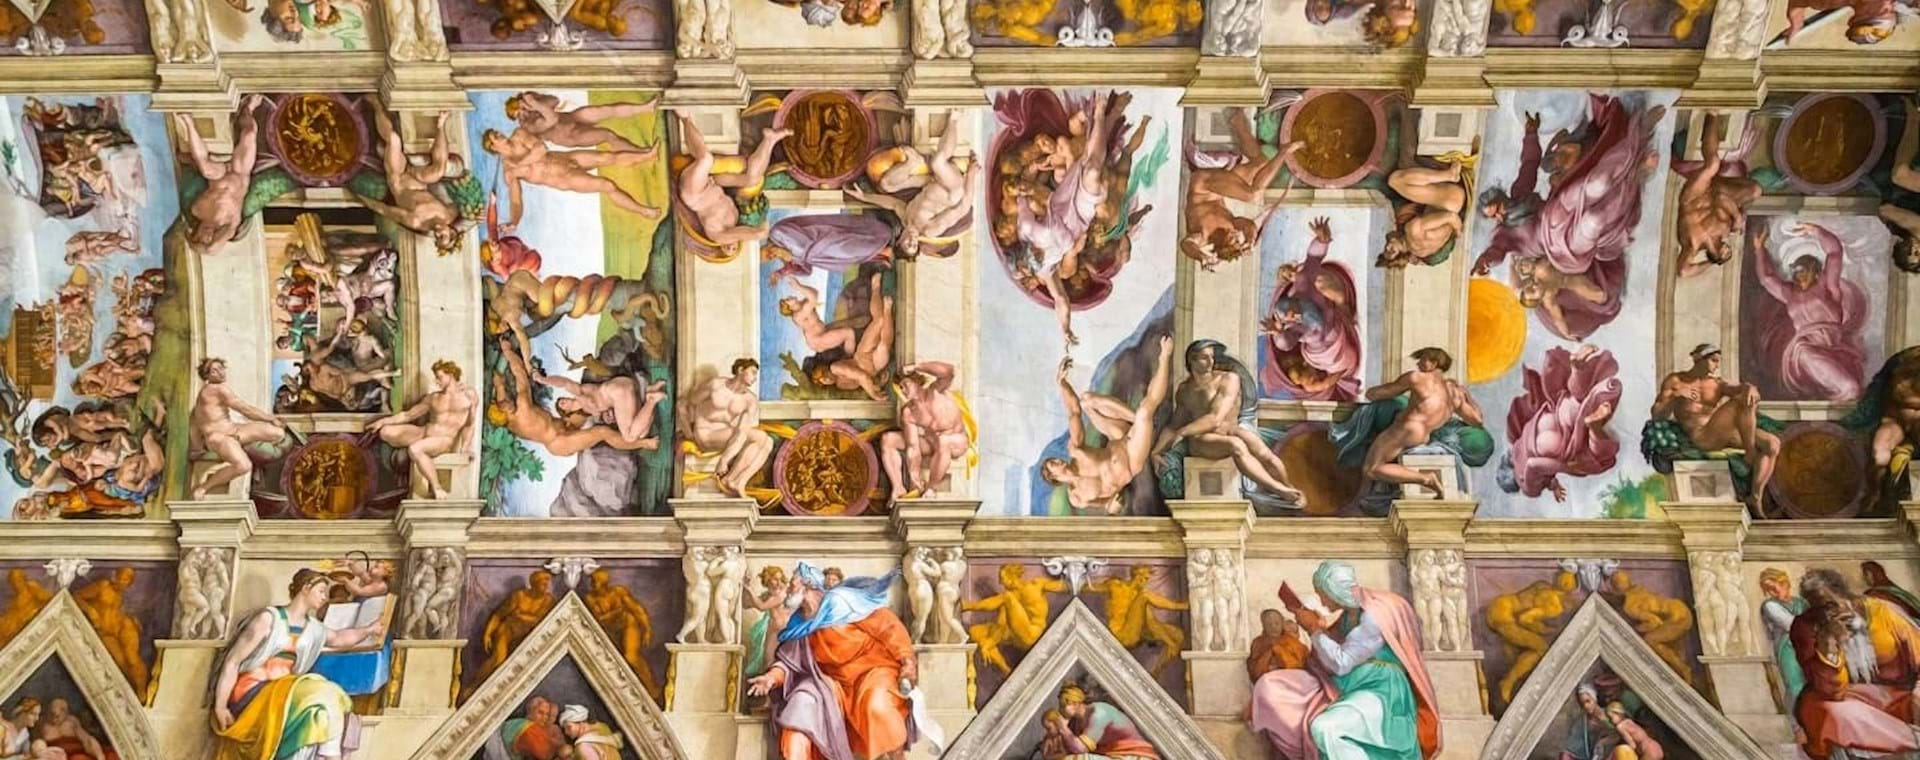 Sistine Chapel Tour Before Opening Hours with St. Peter's Basilica